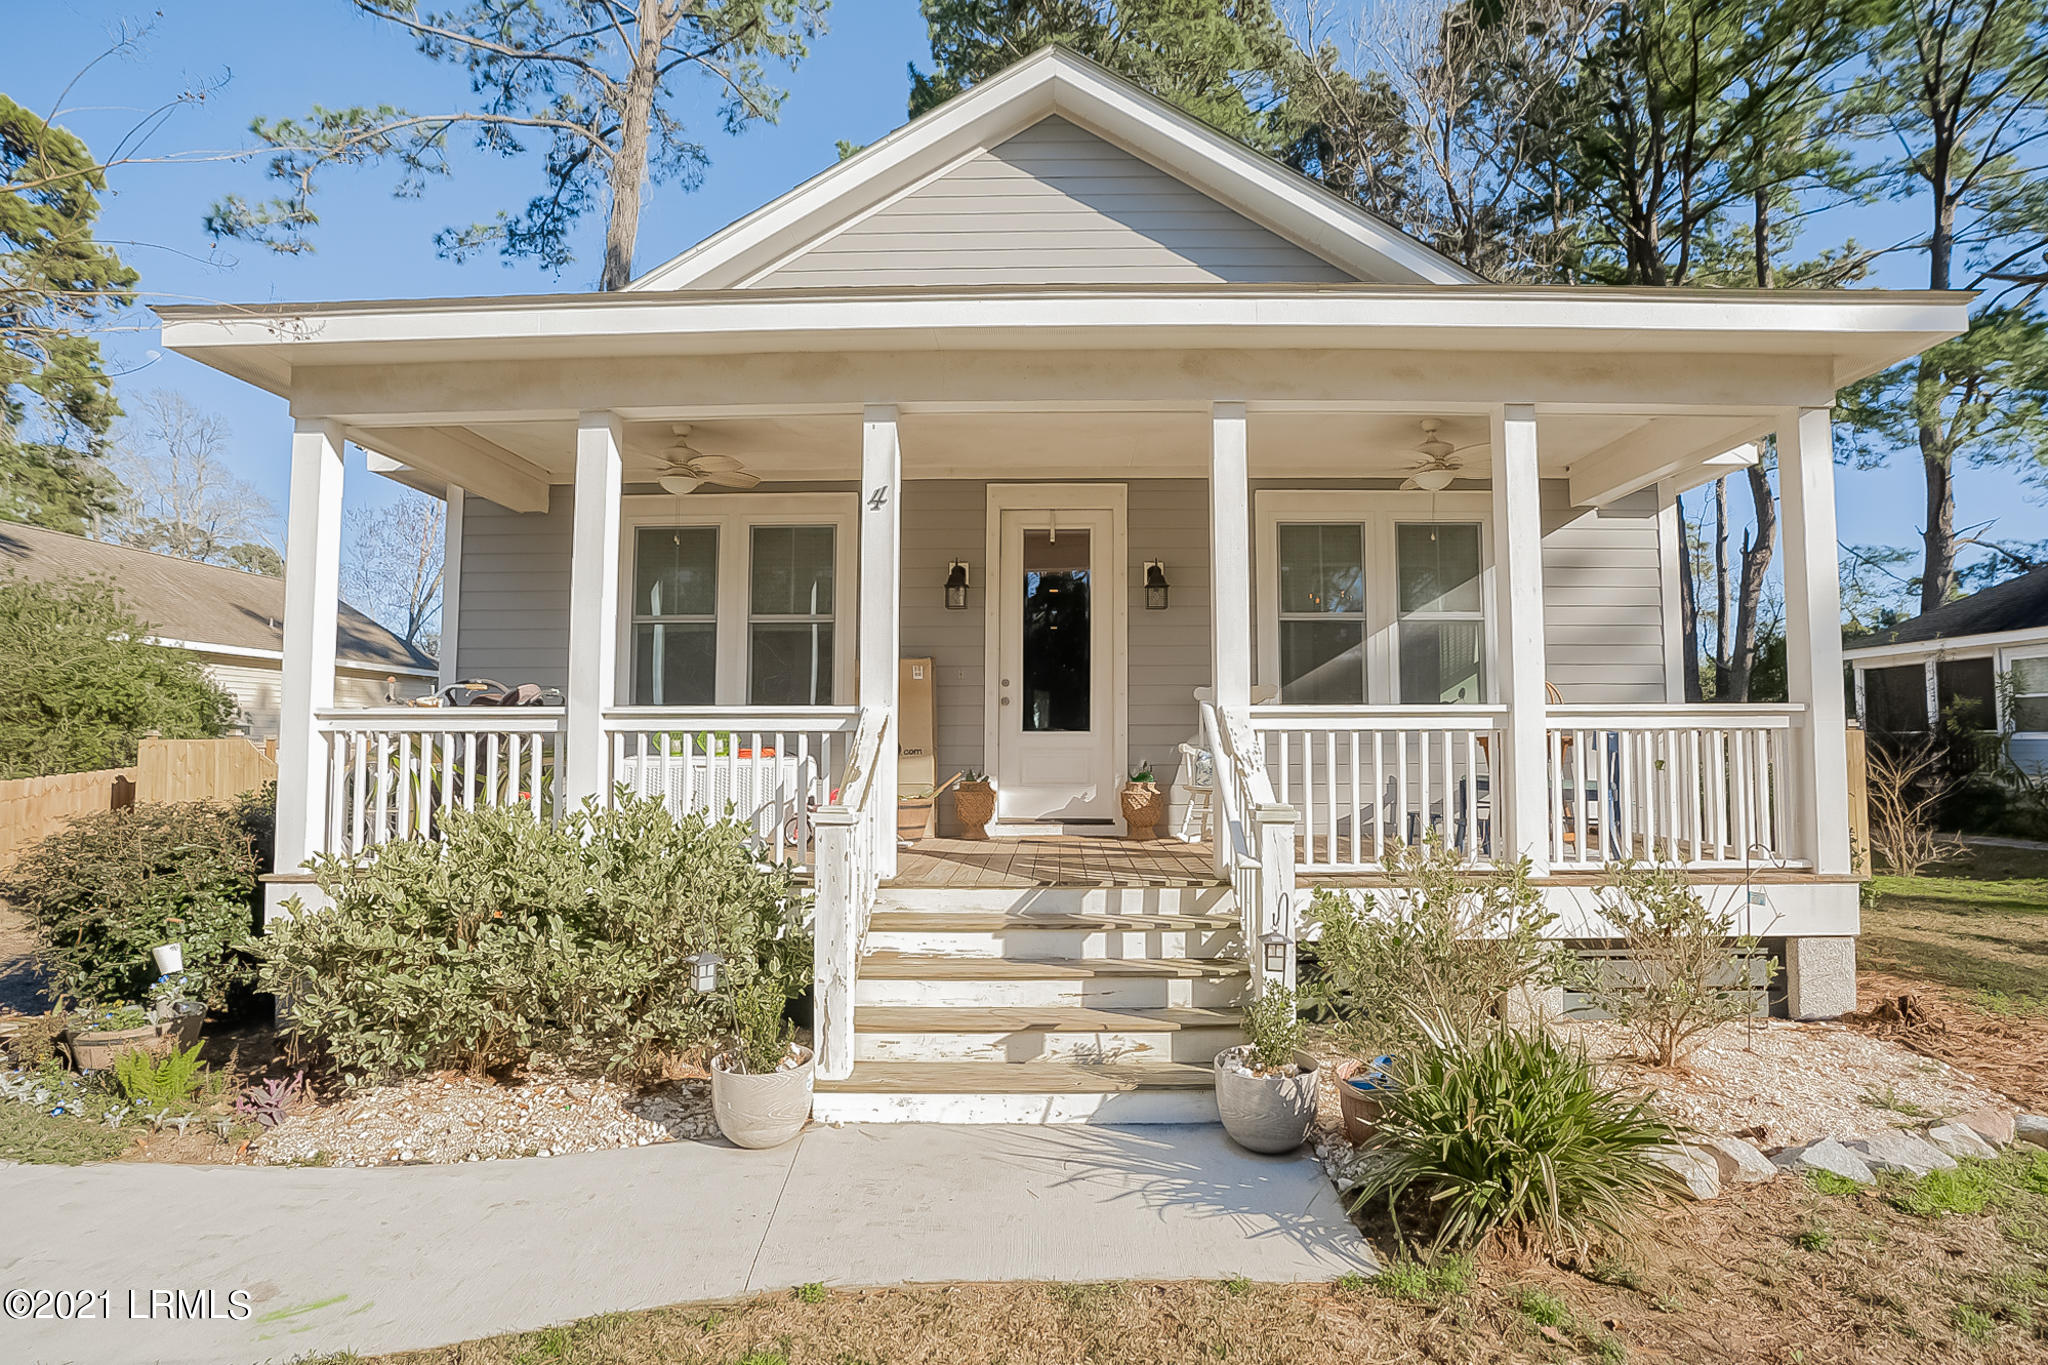 Photo of 4 River Drive, Beaufort, SC 29907